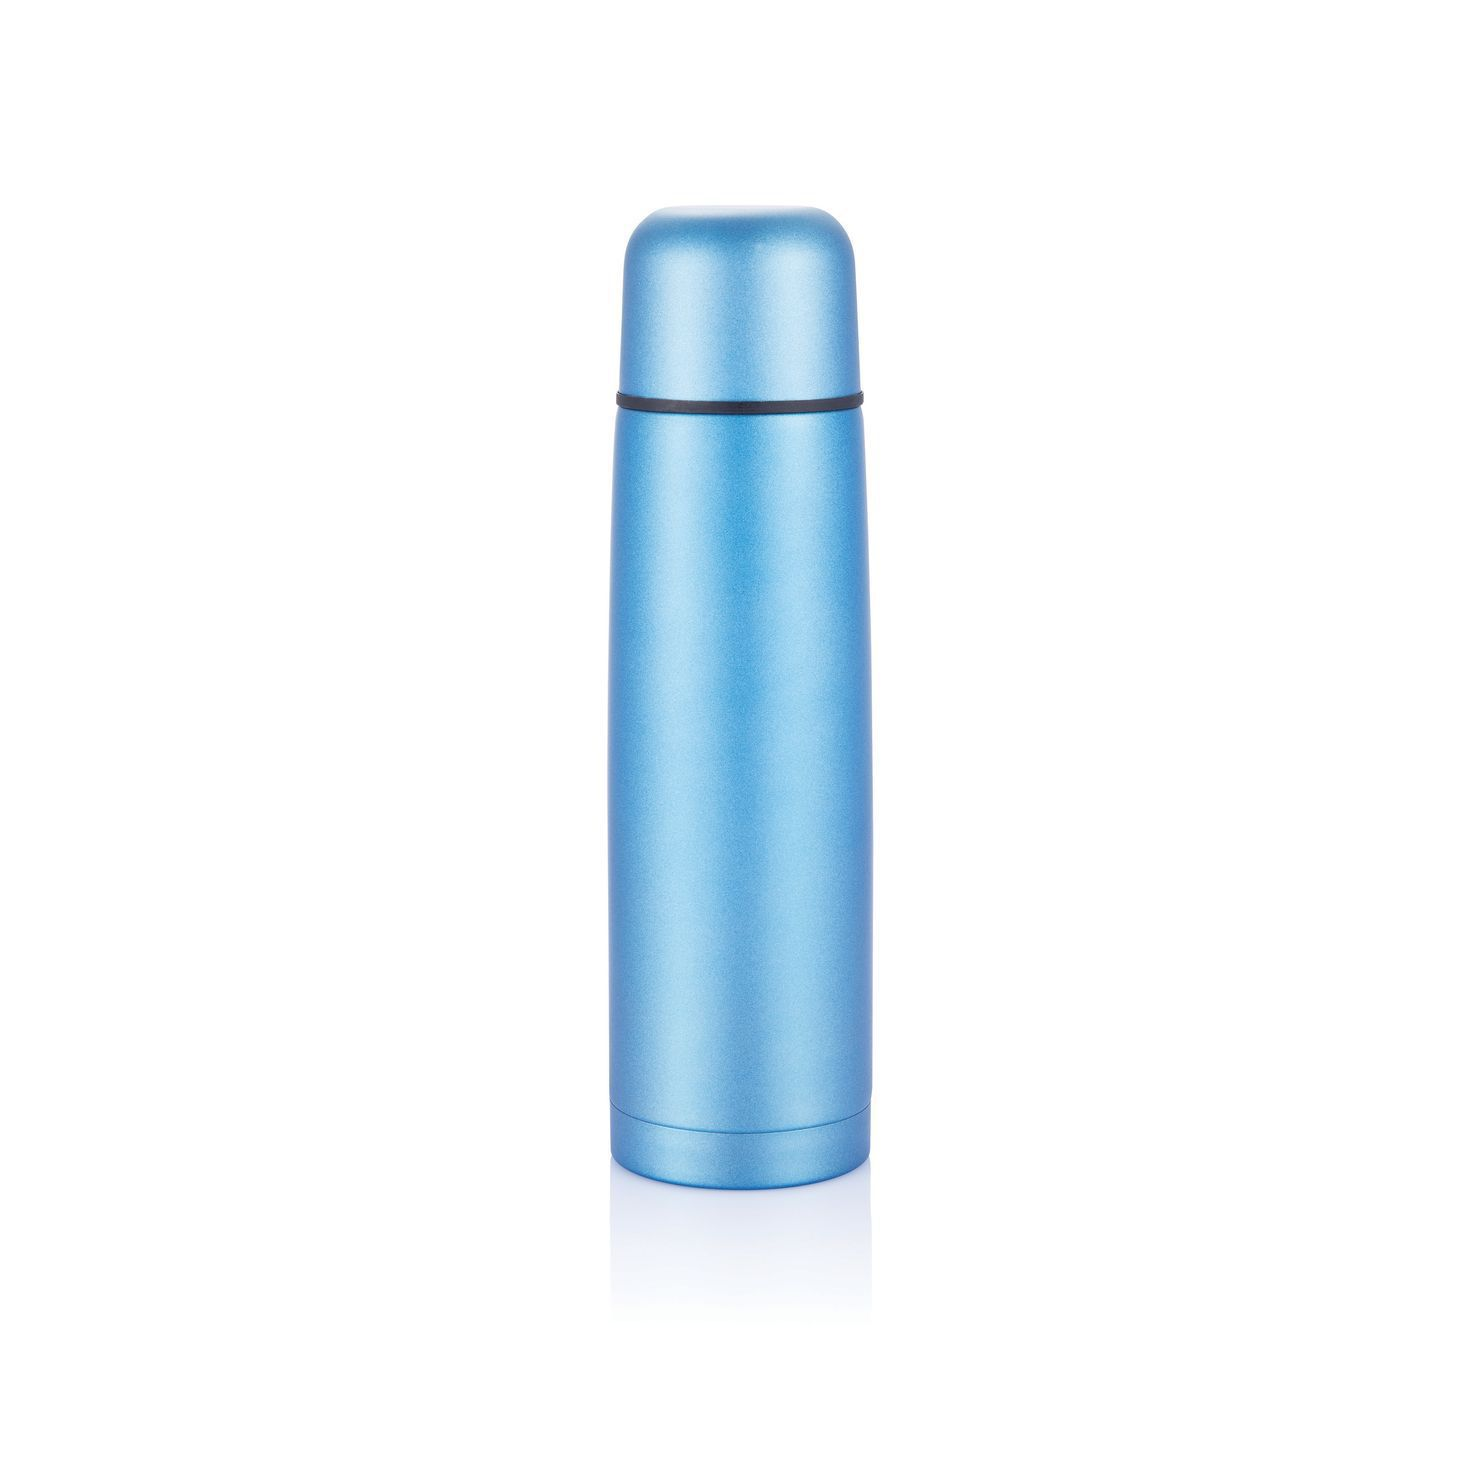 Blauwe Thermosfles bedrukken | 500 ml